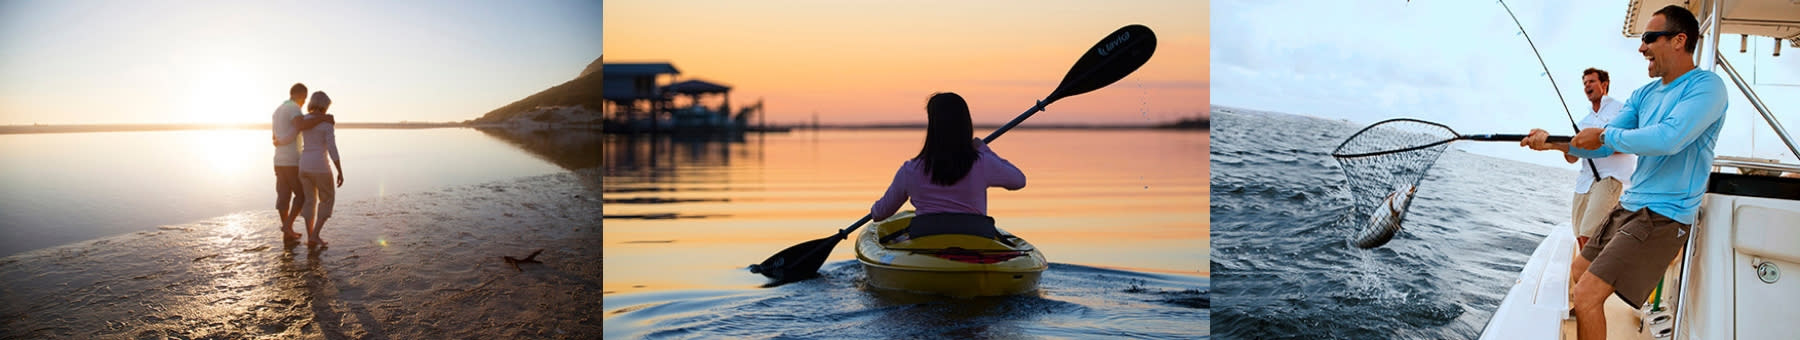 Mississippi Gulf Coast Coupons & Travel Deals